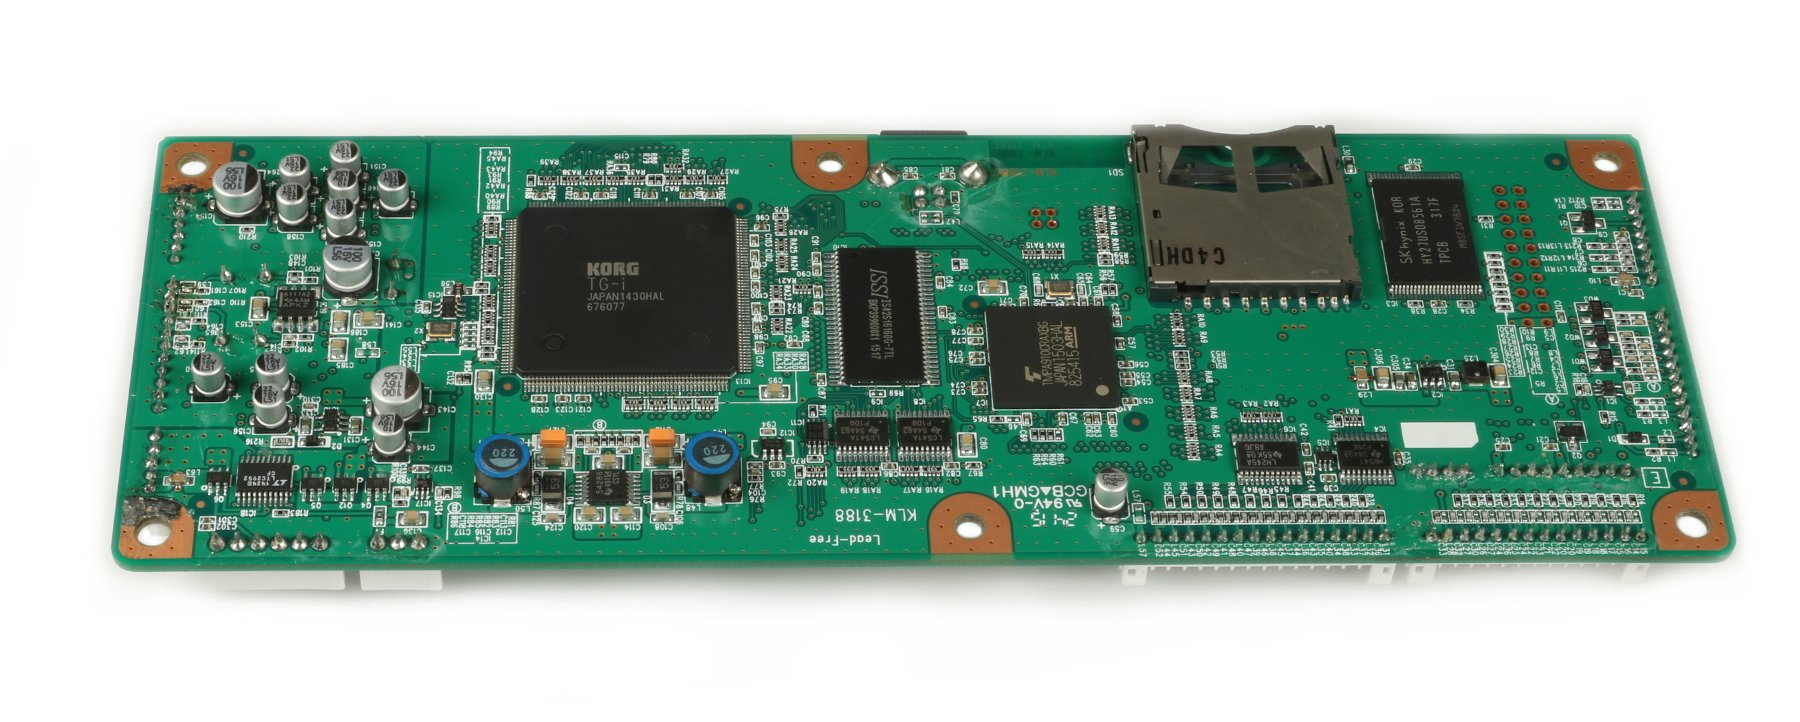 Main PCB Assembly for KLM3188, KROSS61, and KROSS88